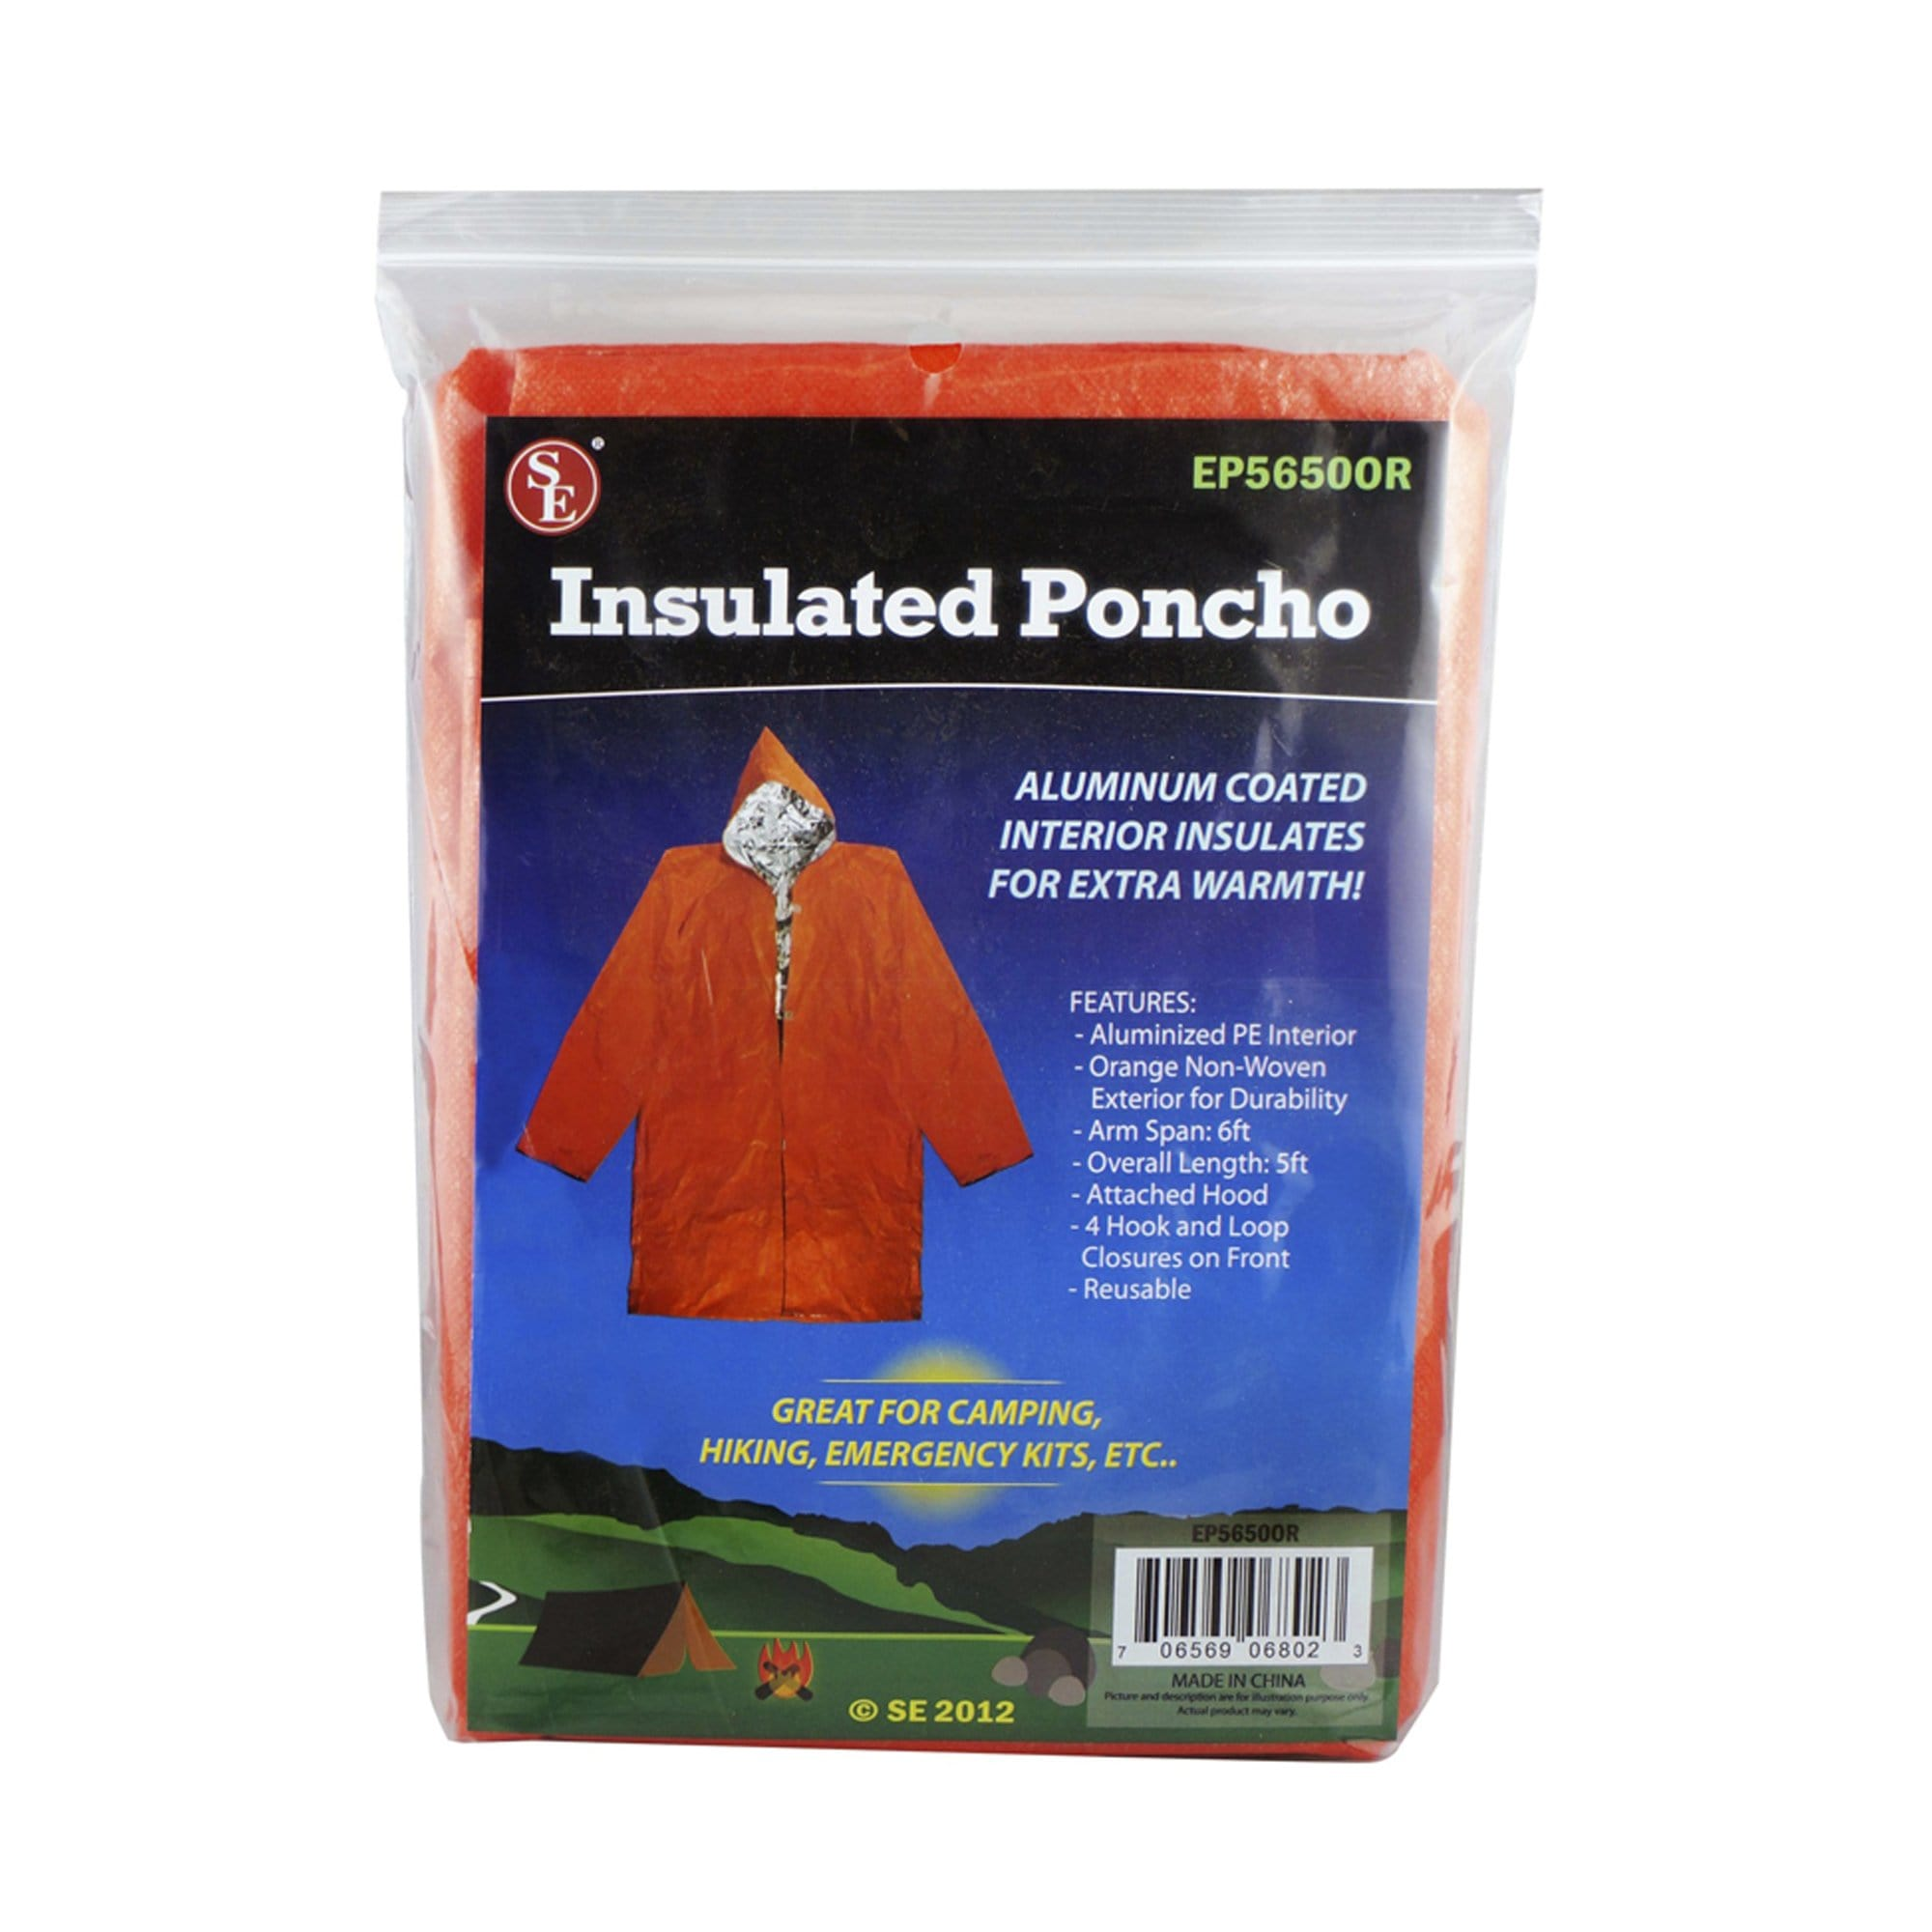 5ft Overall Length Aluminum Coated Insulated Poncho